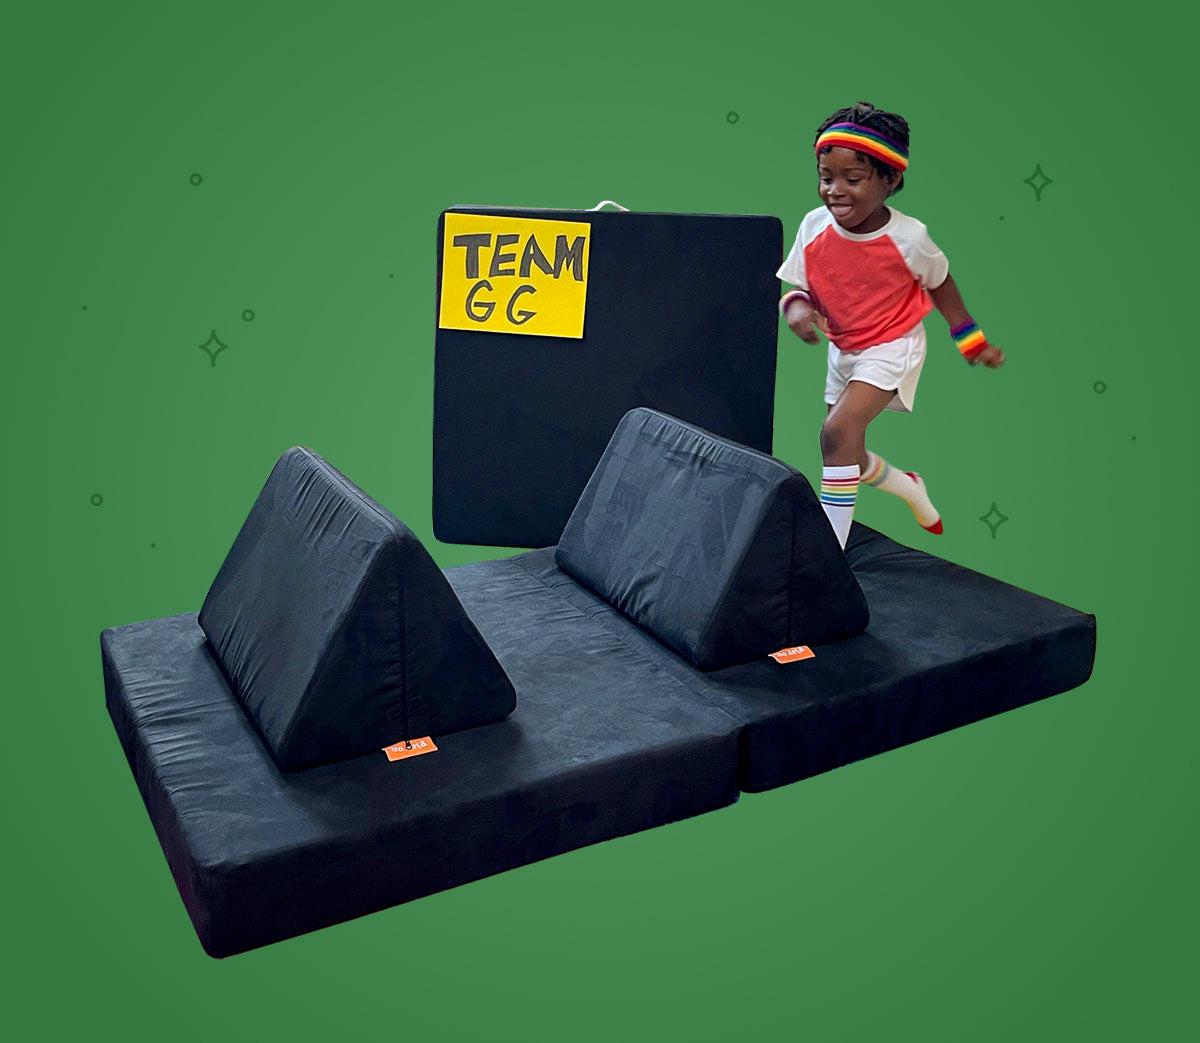 Child leaping over a pillow placed on cushion, set up like a hurdle from track and field